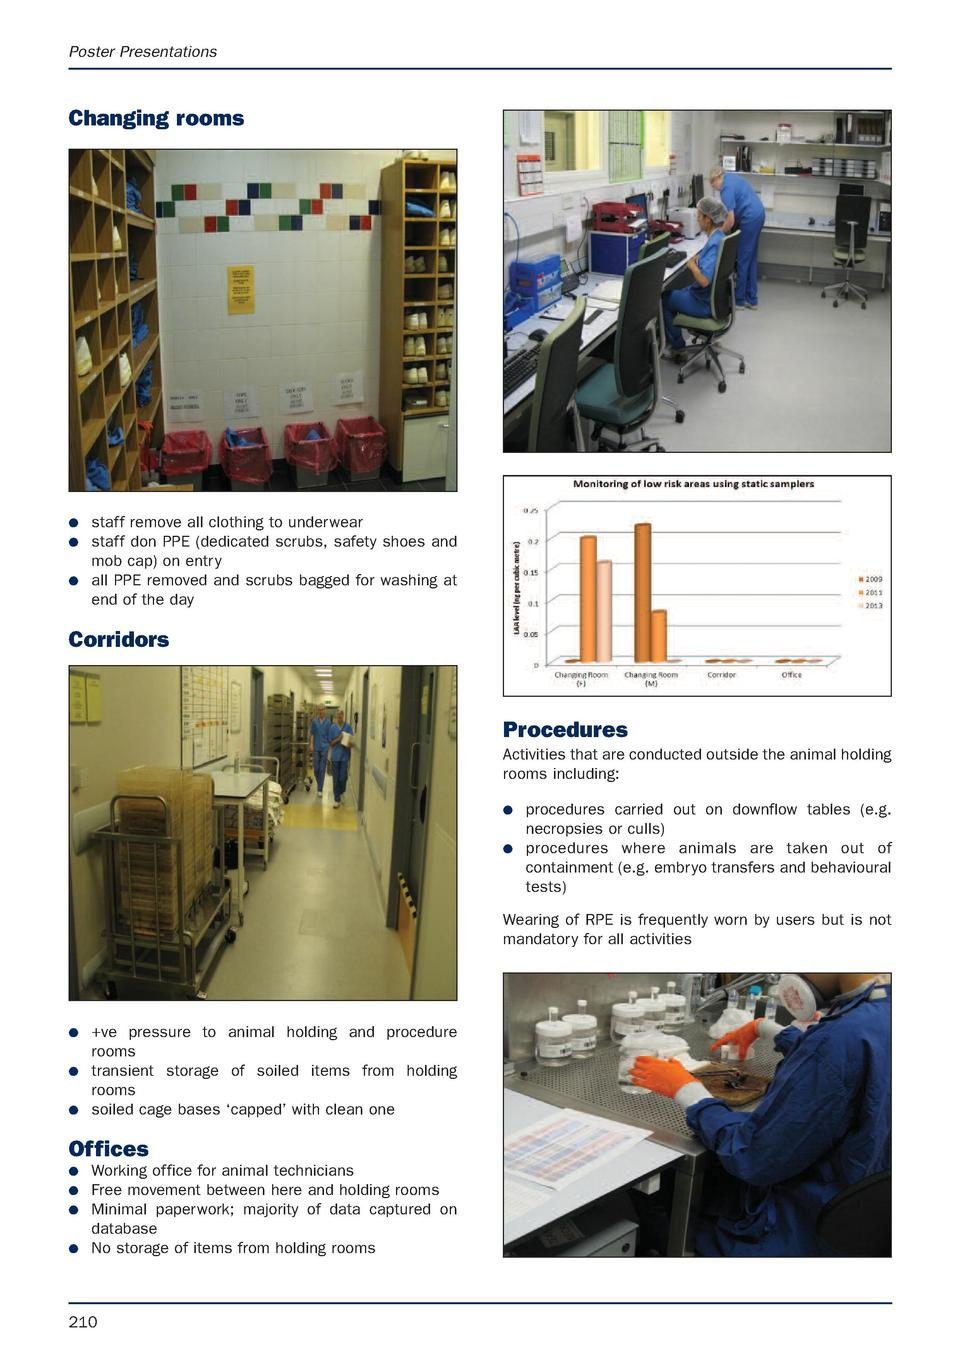 Poster Presentations  Changing rooms  G G G  staff remove all clothing to underwear staff don PPE  dedicated scrubs, safet...